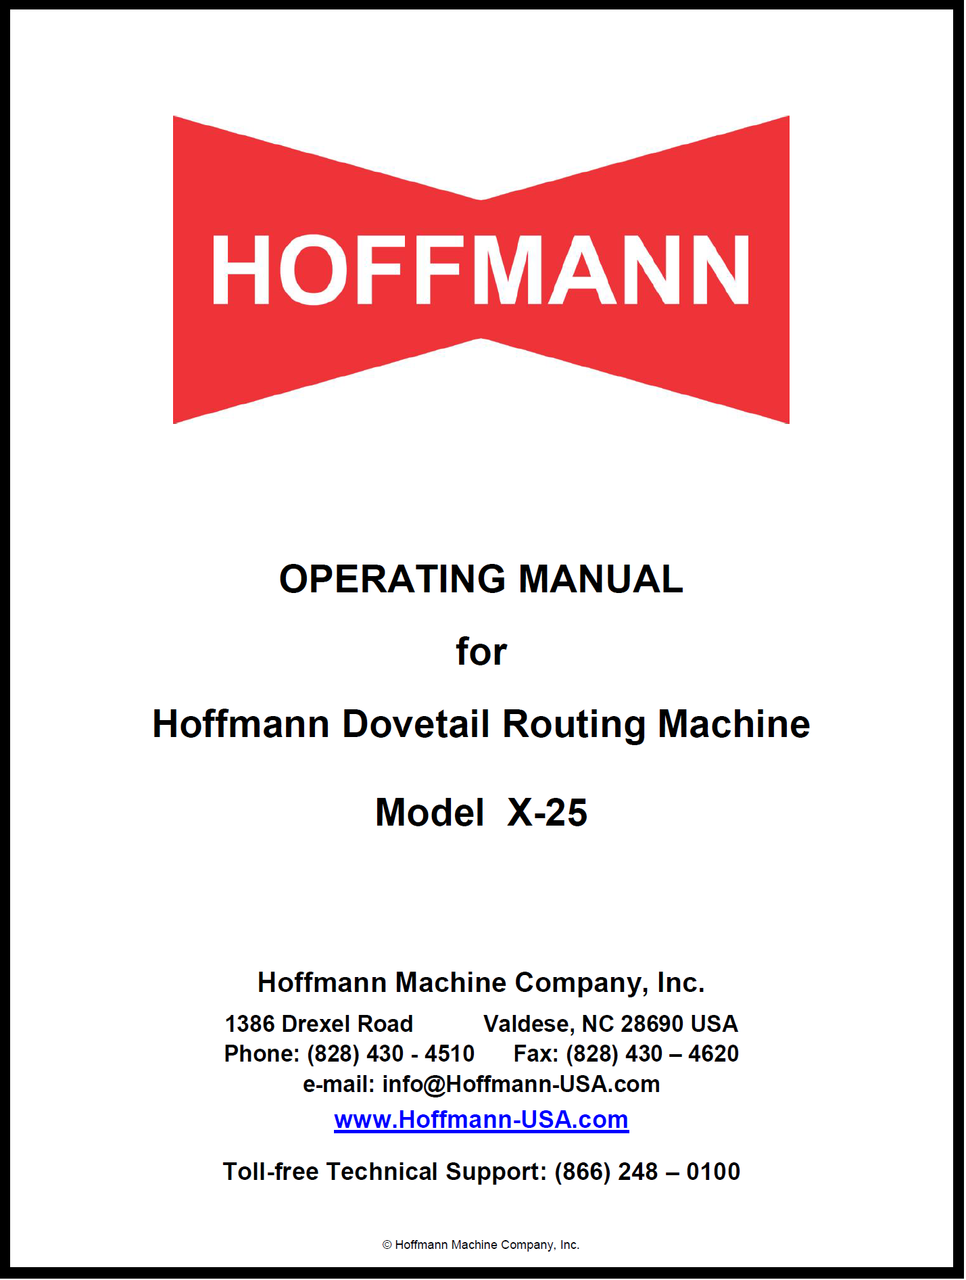 Operating Manual for X-25 Hoffmann Dovetail Routing Machines